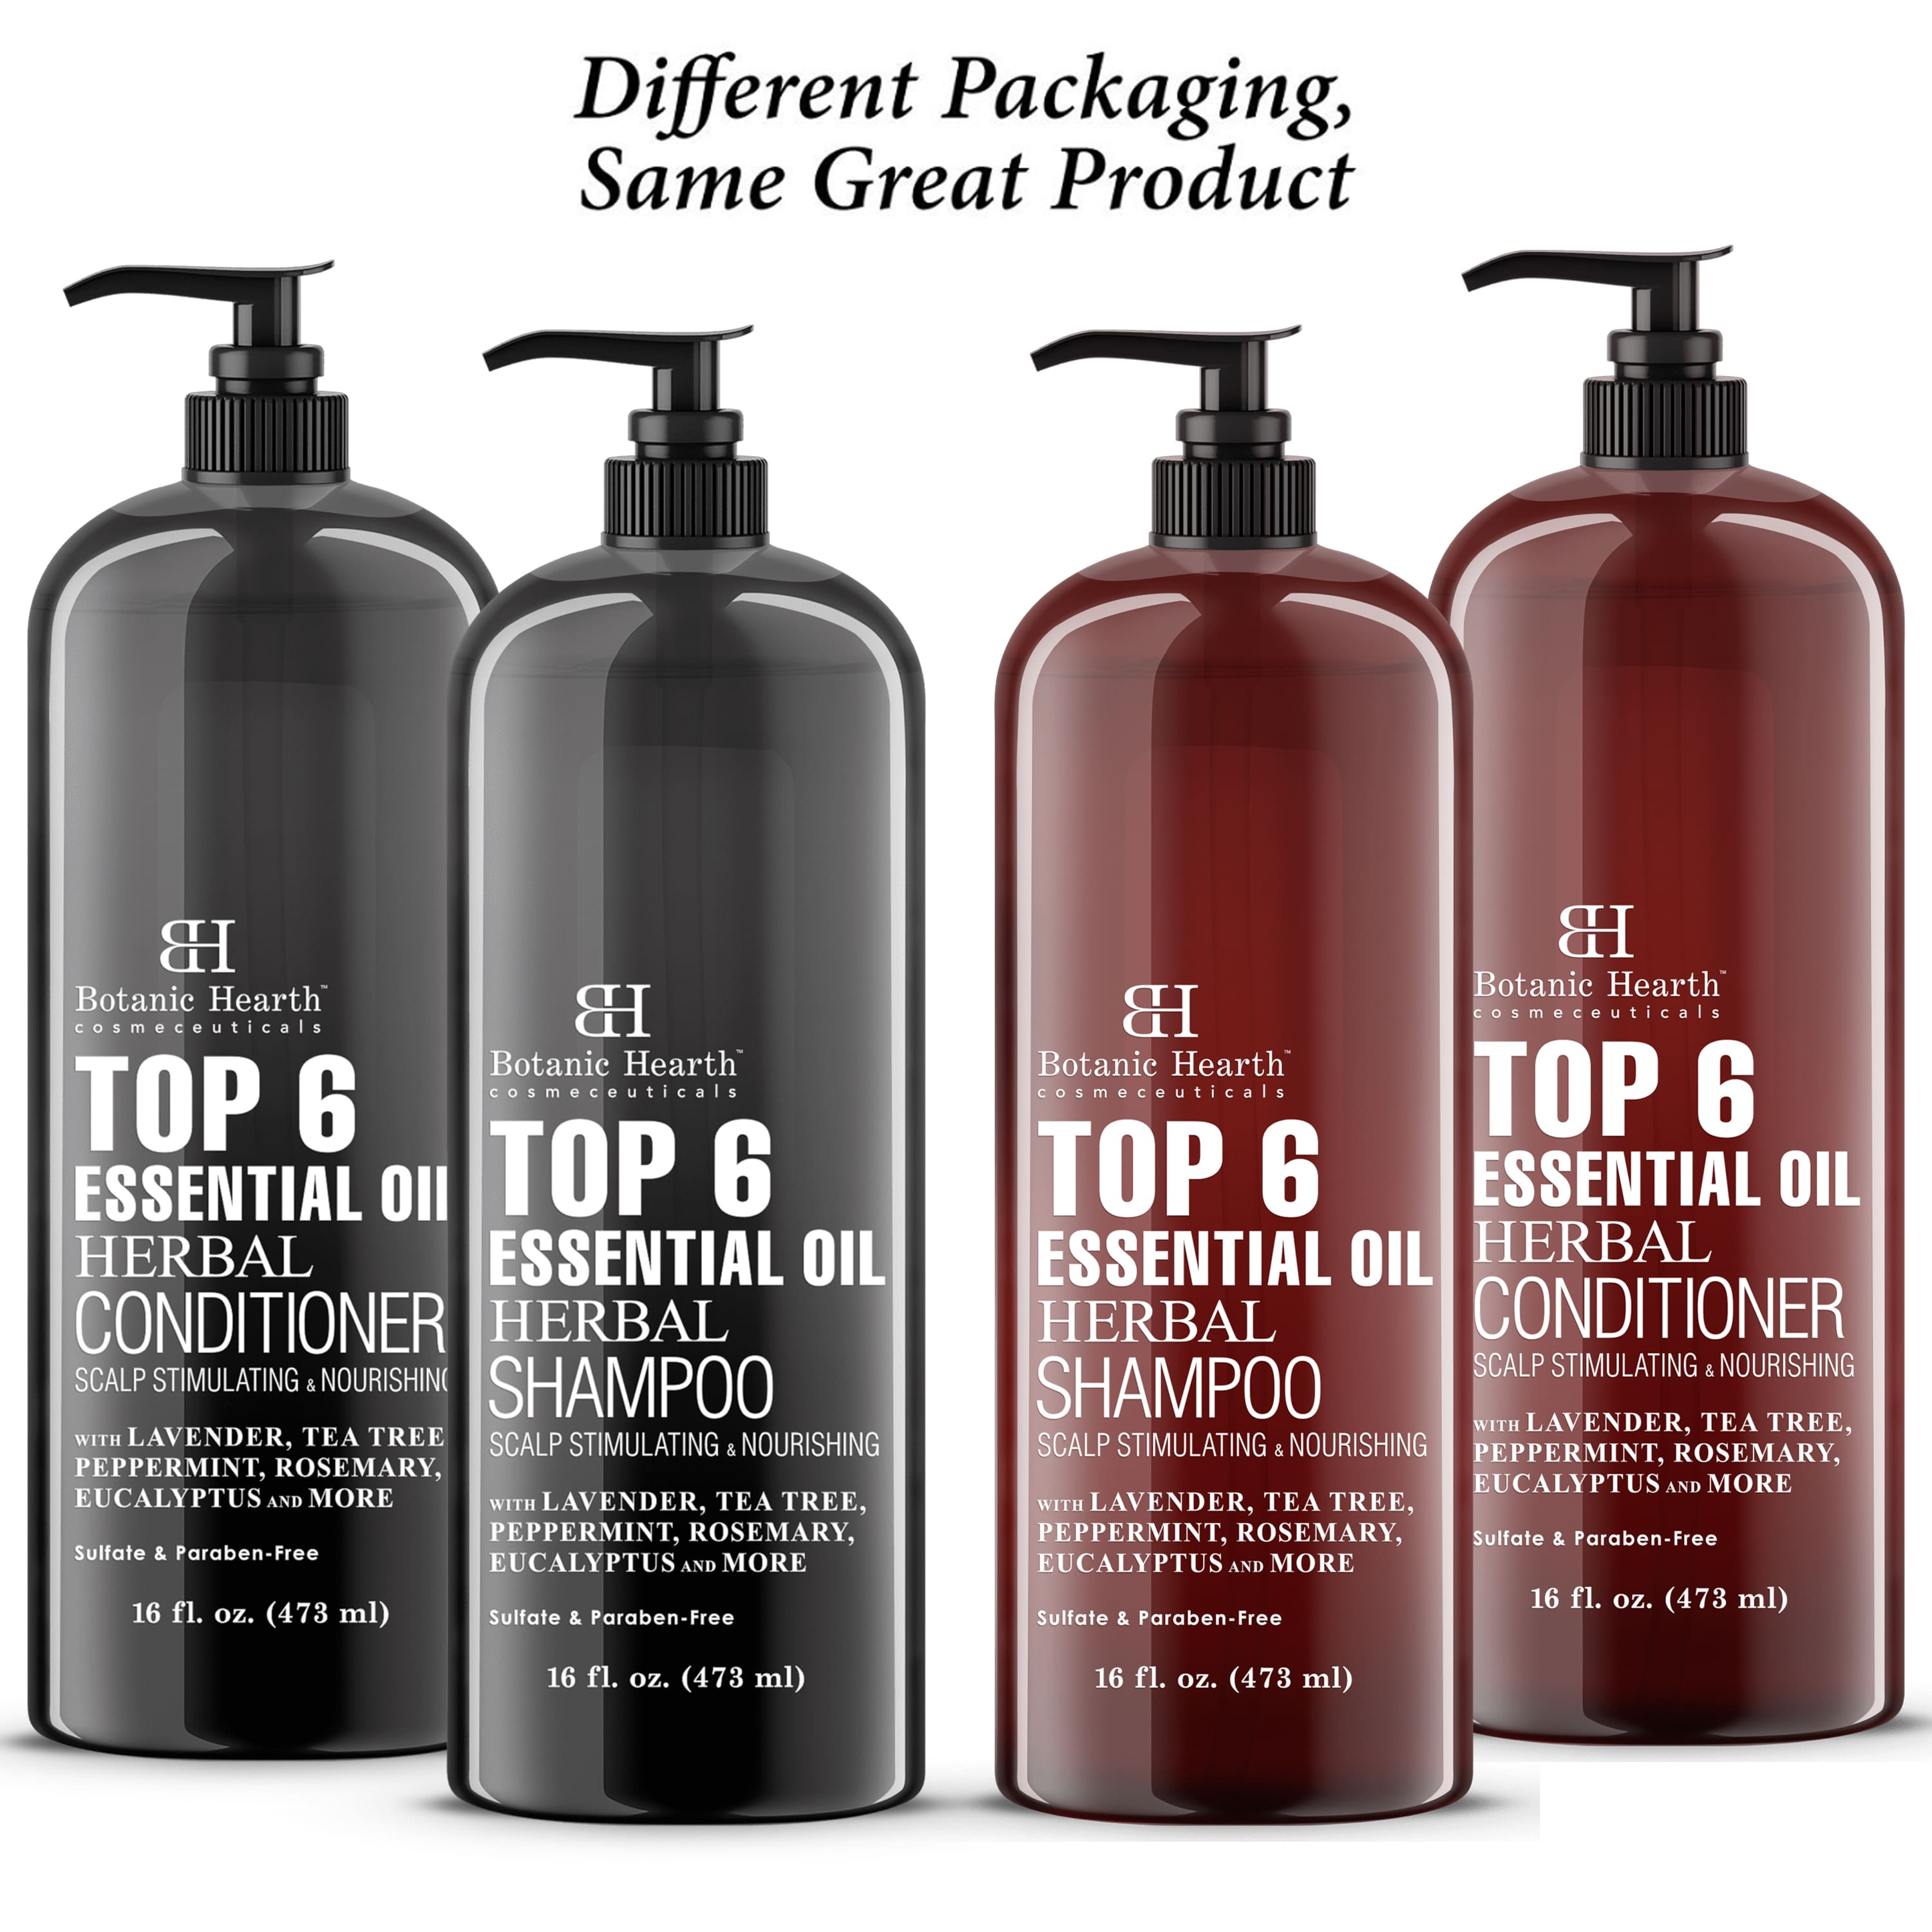 Top 6 Essential Oils Herbal Shampoo And Conditioner set amber and black color bottle  different packaging